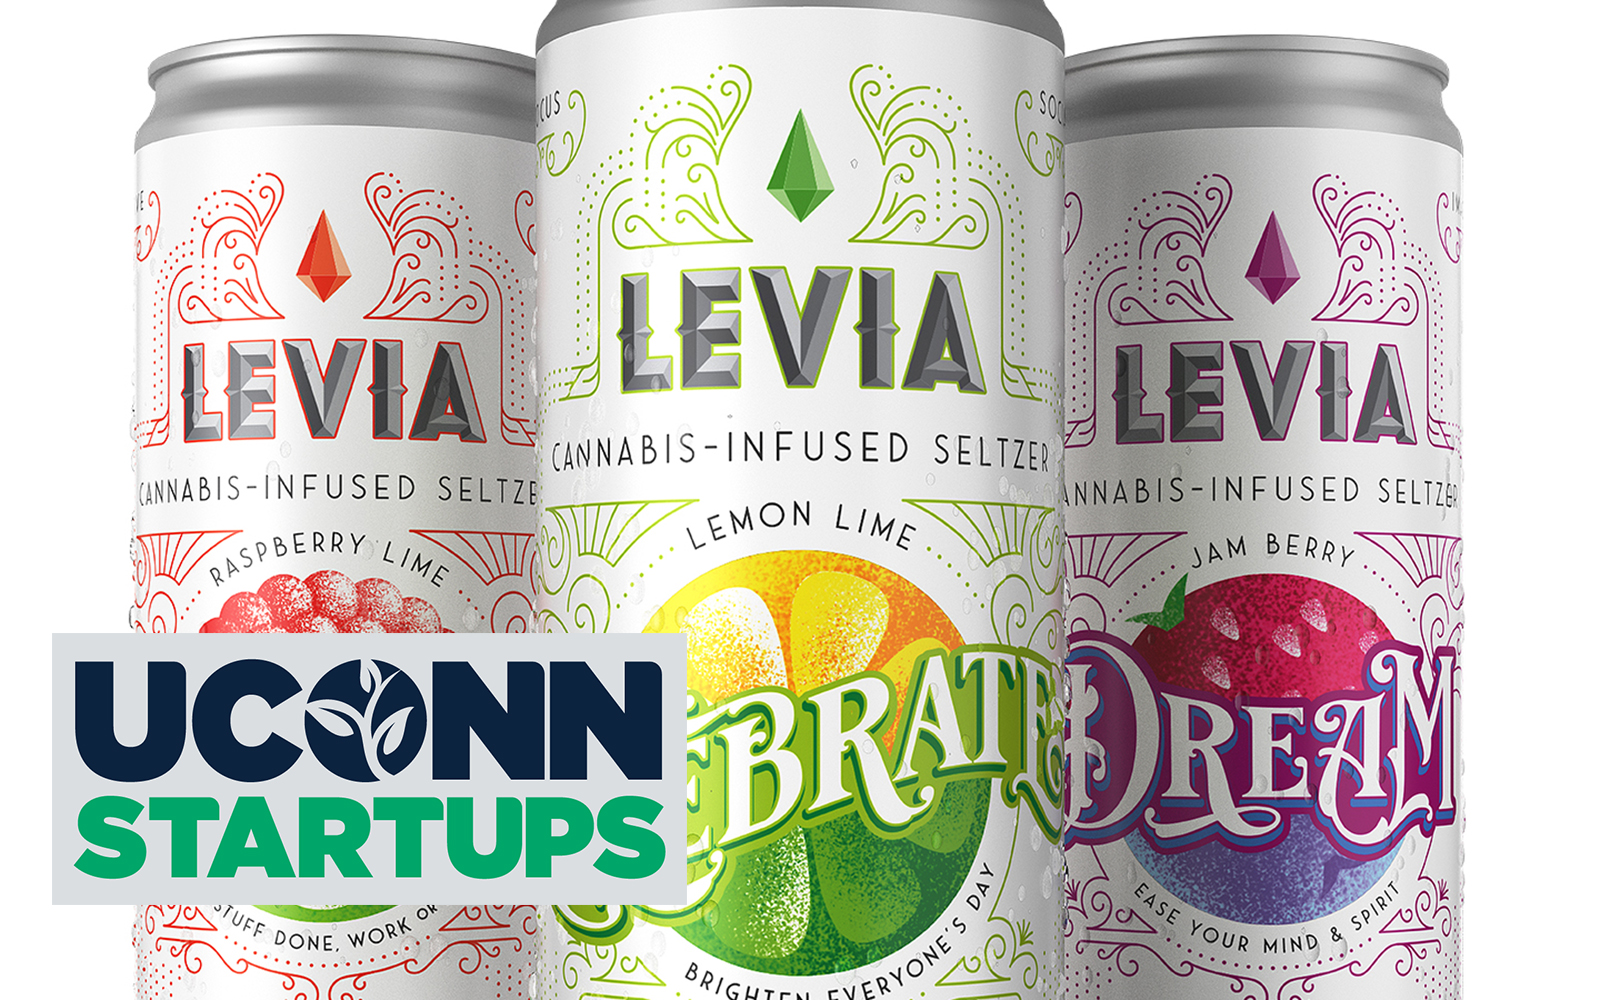 Cans of Levia - Cannabis-infused seltzer